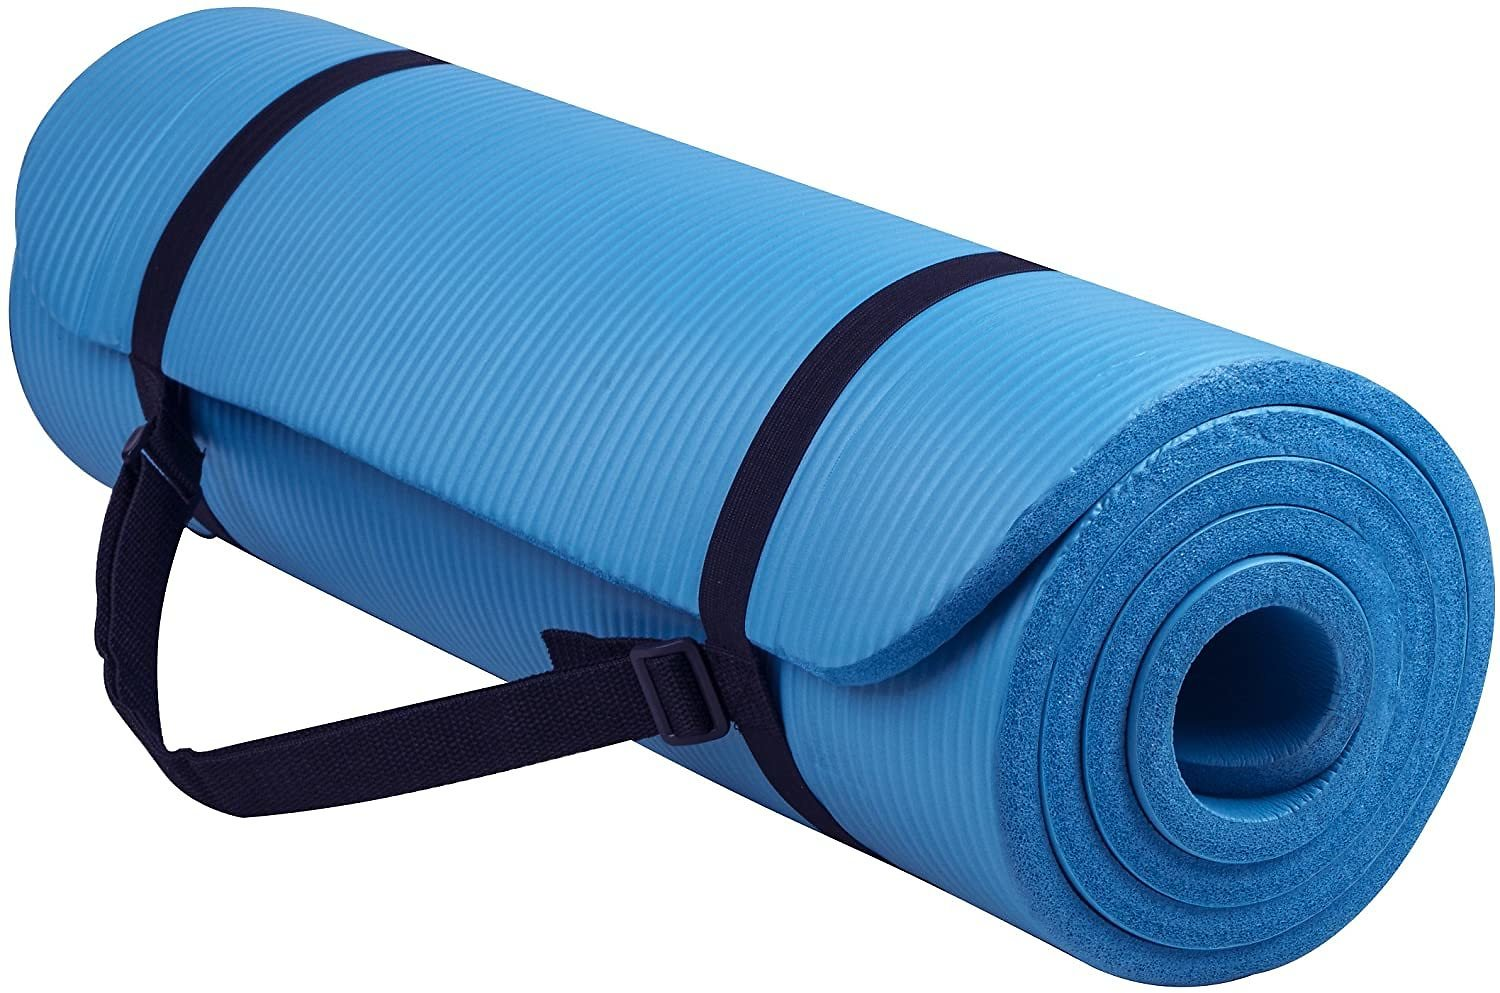 Yoga Mat with Carrying Strap (1/2-Inch Extra Thick High)